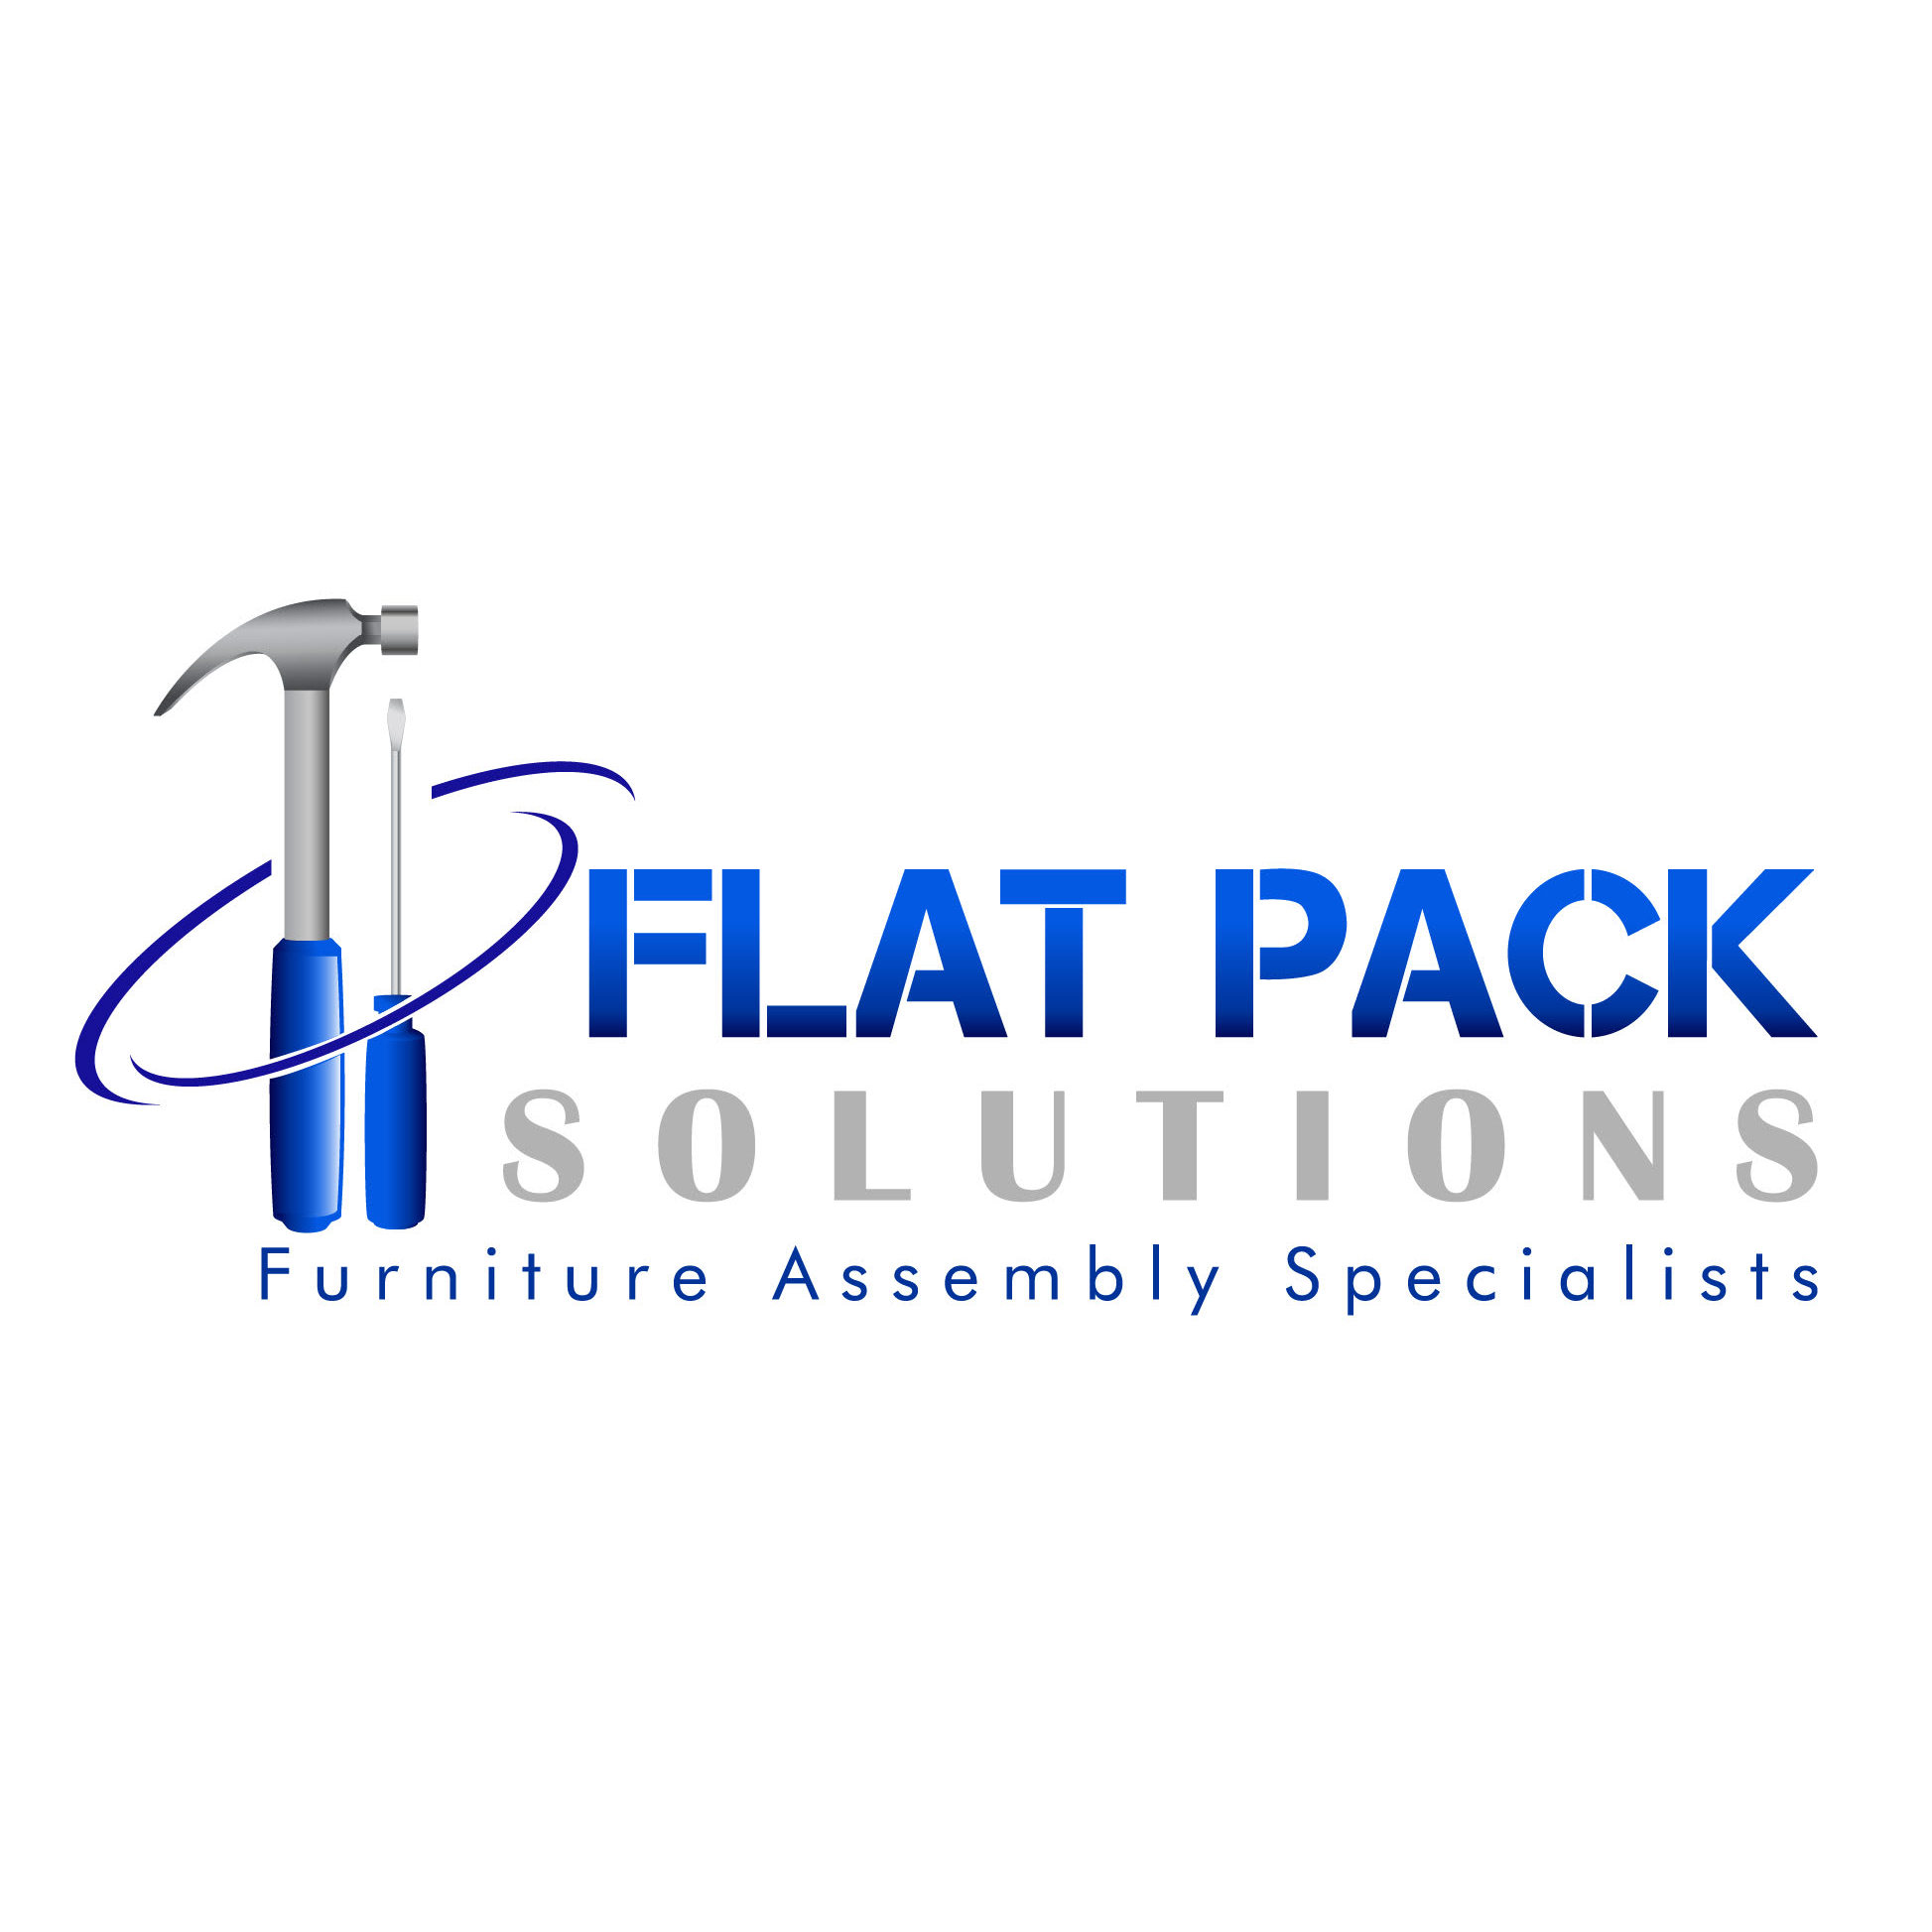 Flat Pack Solutions Ltd - Birmingham, West Midlands B42 2SG - 01213 251477 | ShowMeLocal.com